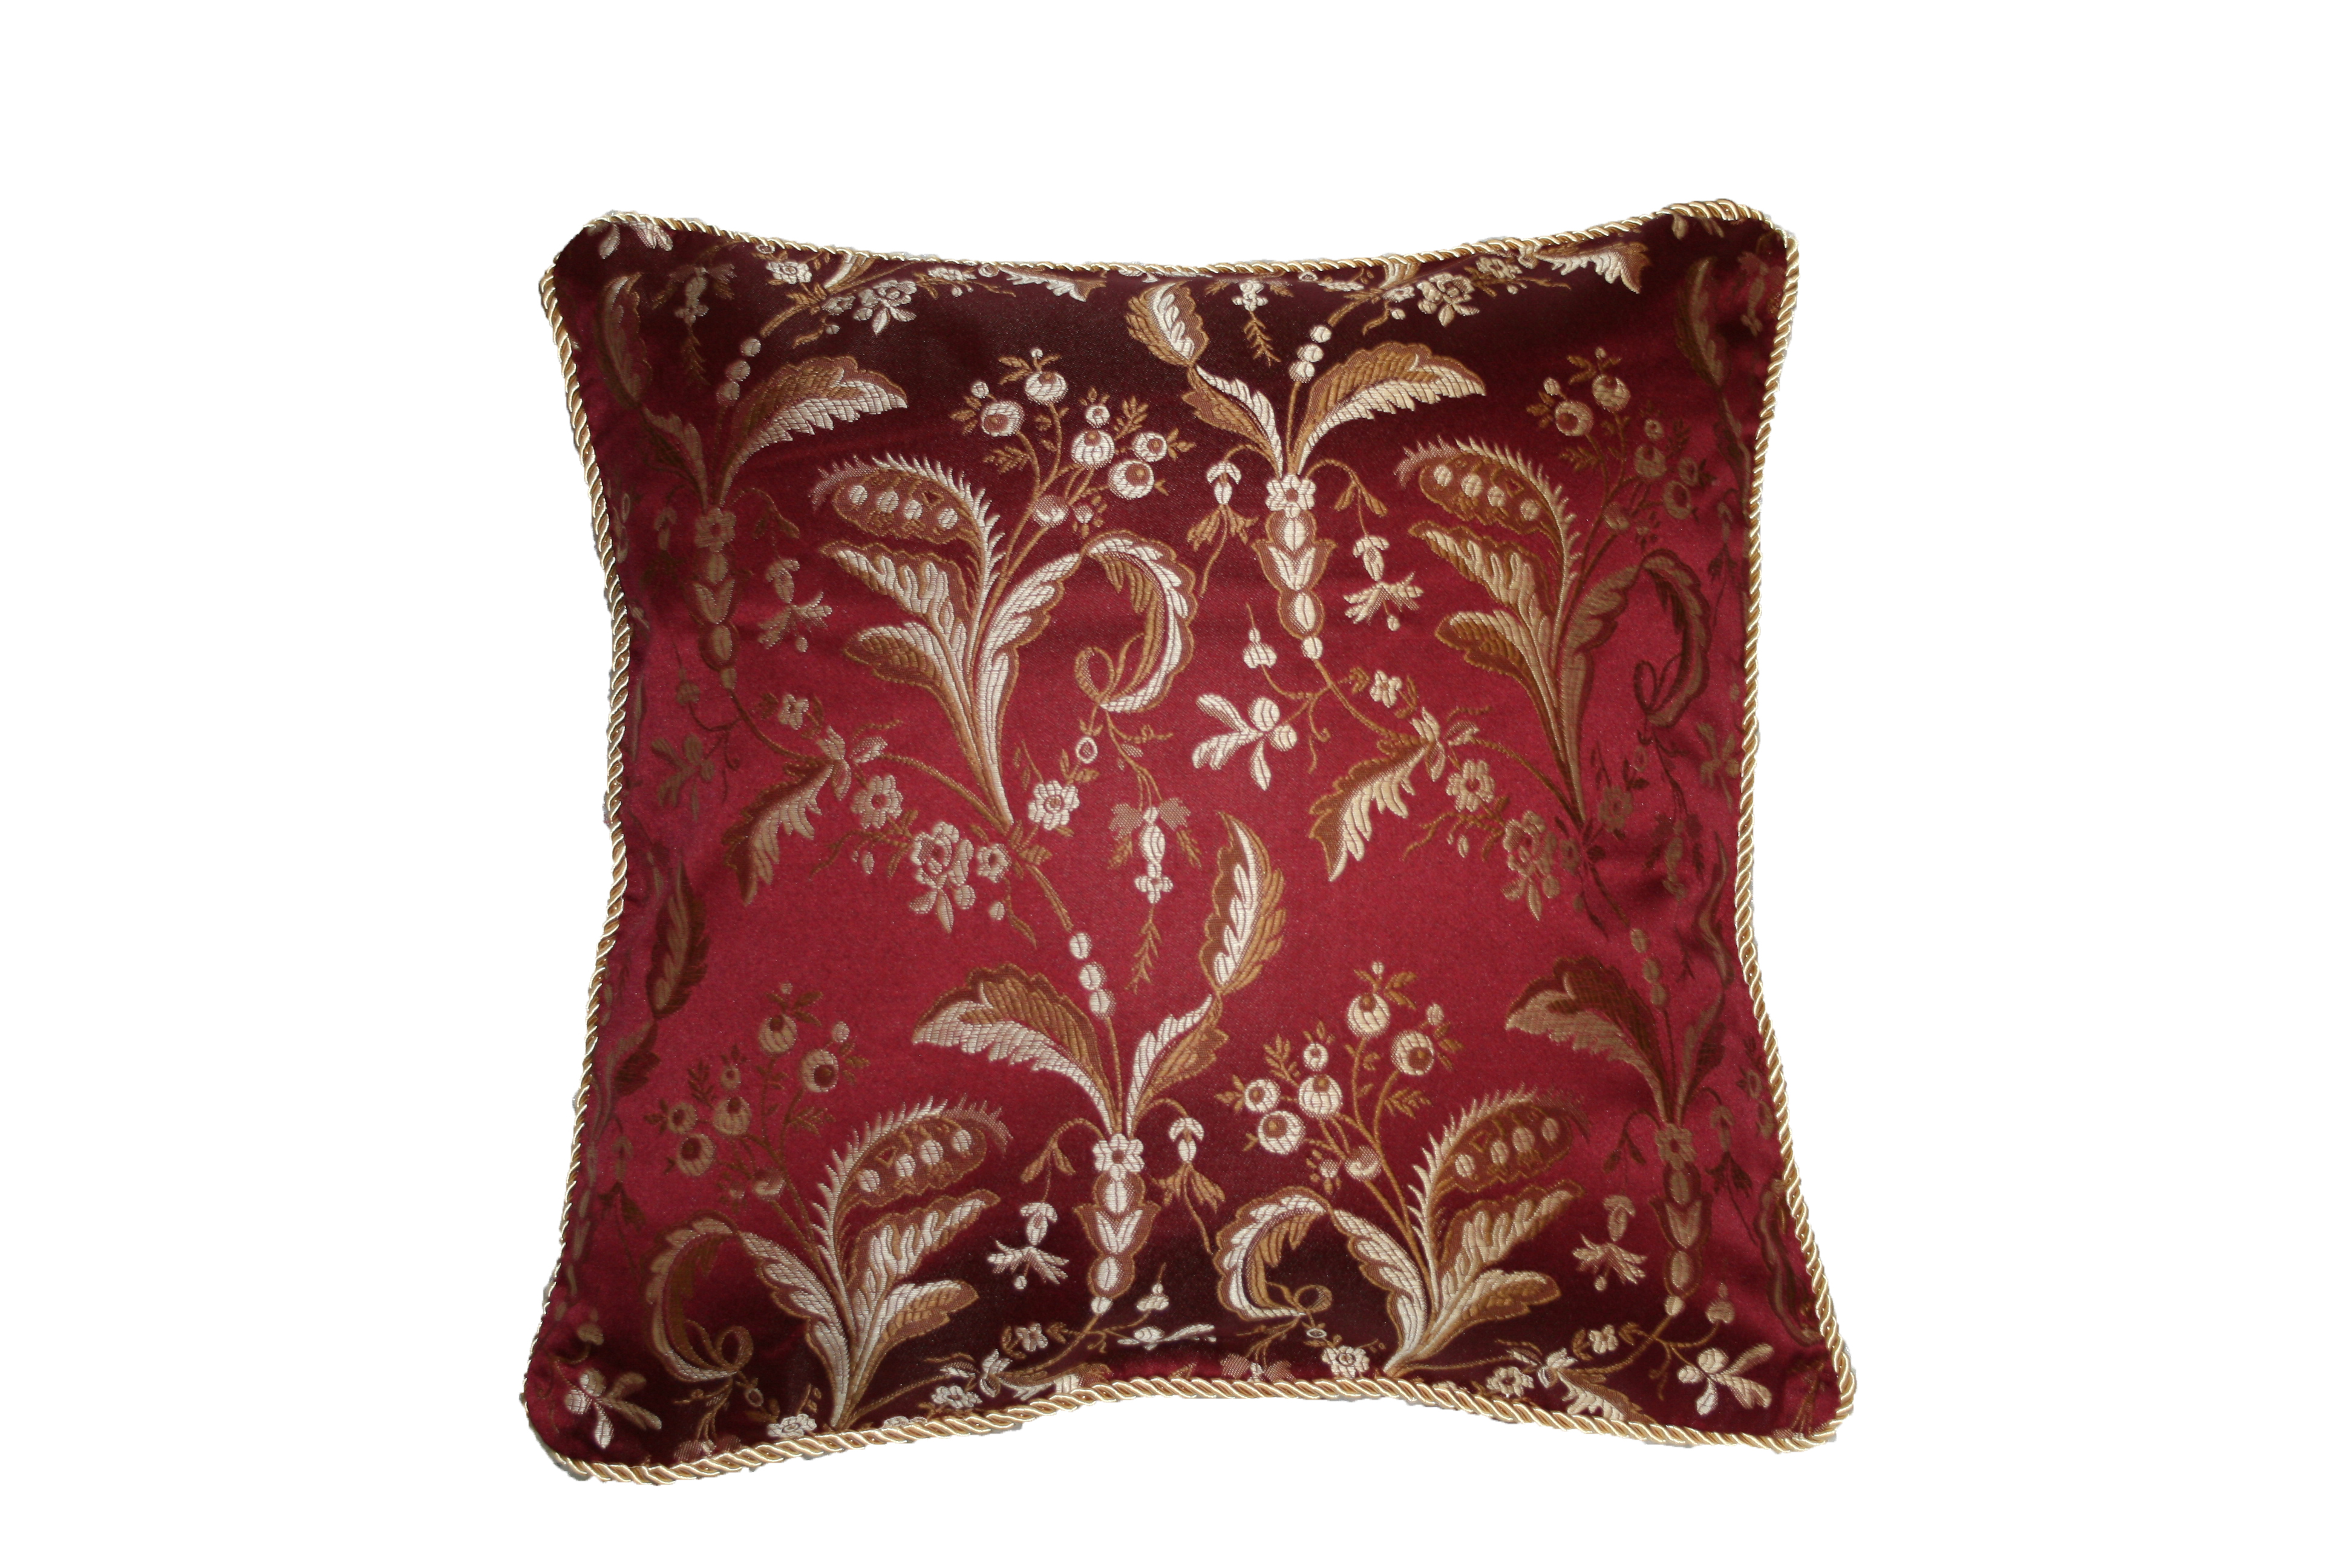 Luxury Damask Design Decorative Throw Pillow